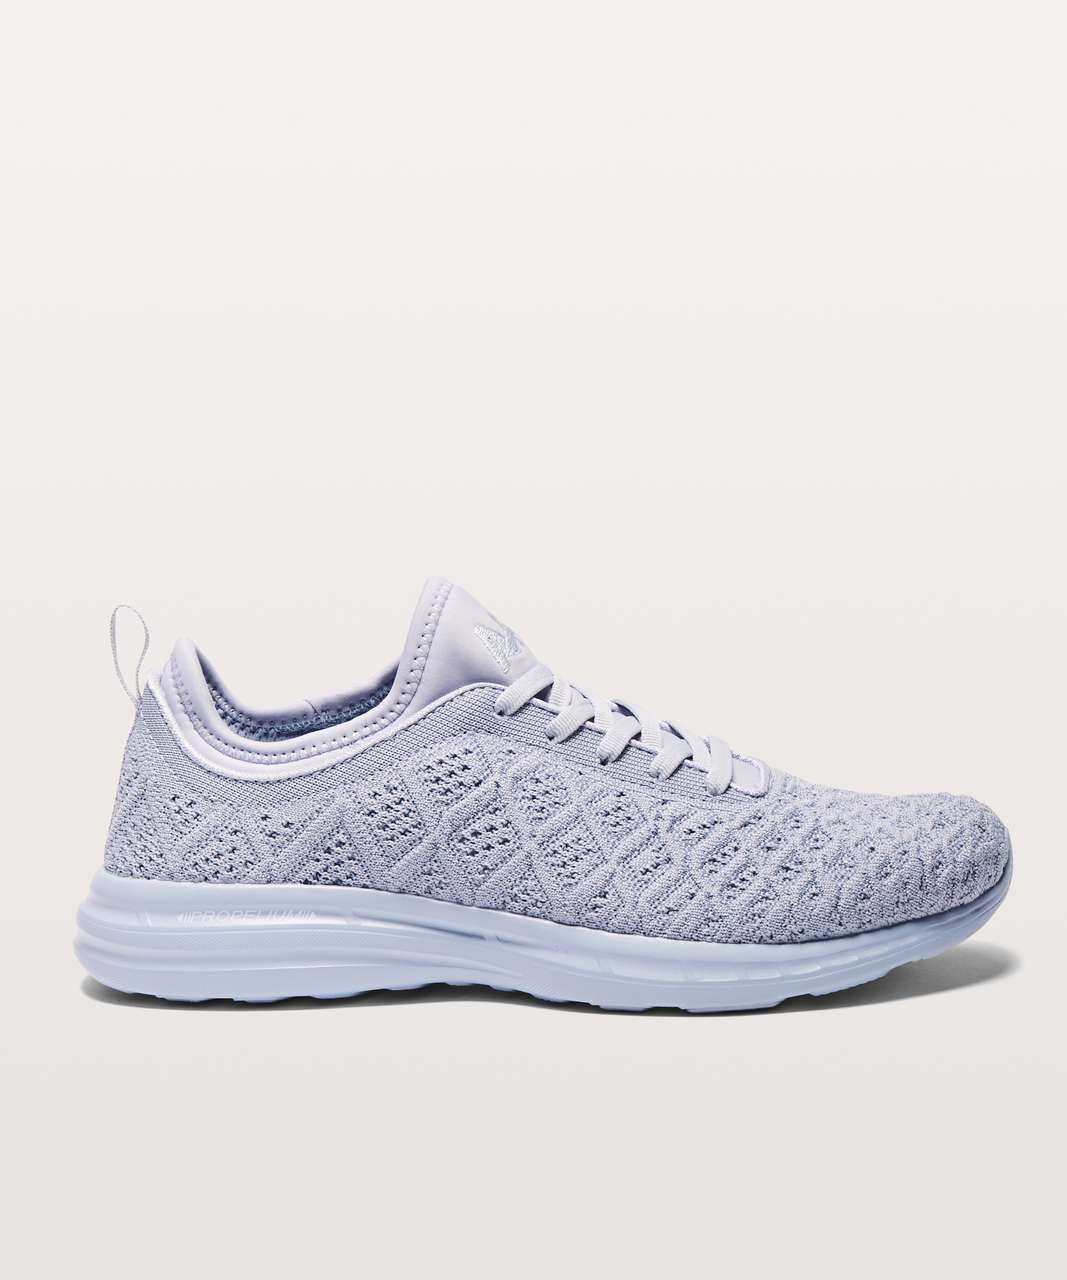 Lululemon Womens TechLoom Phantom Shoe - Light Lavendar